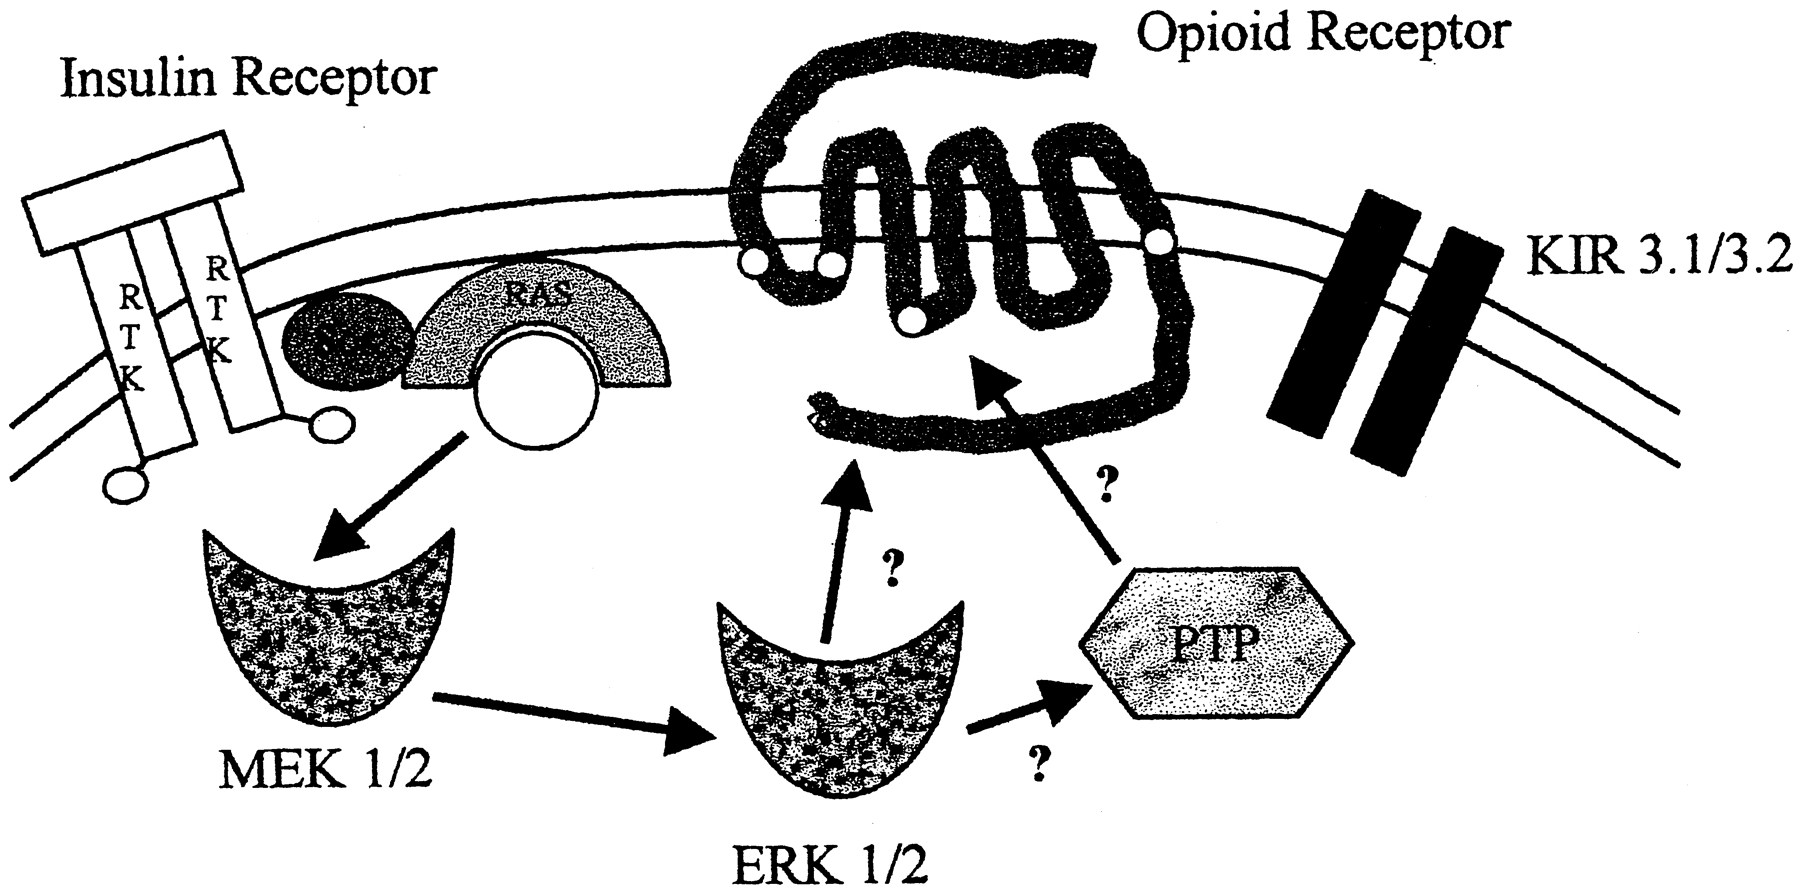 Tyrosine Phosphorylation Of The Opioid Receptor